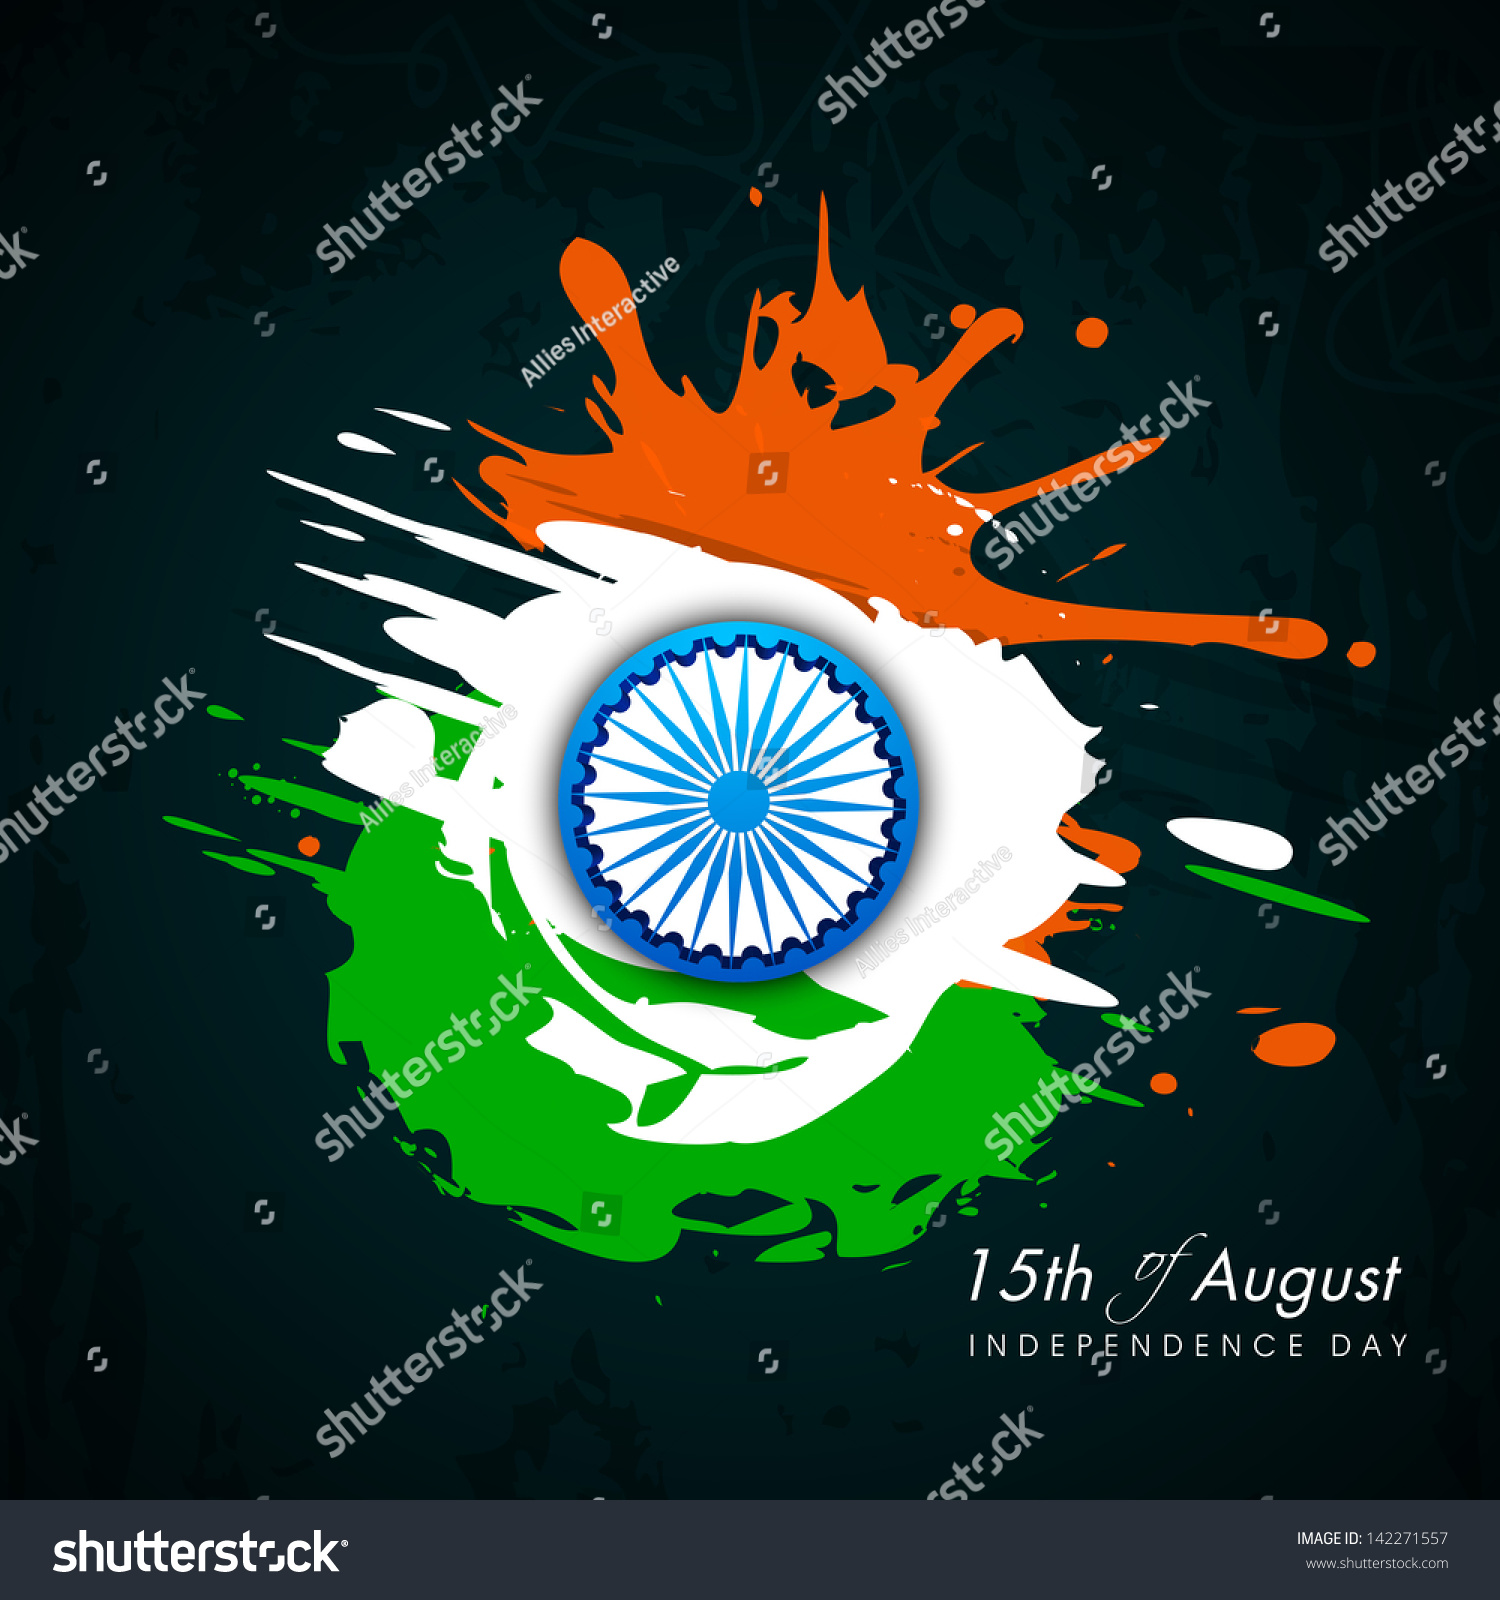 Colors website ashoka - Indian Independence Day Background With National Flag Colors And Ashoka Wheel